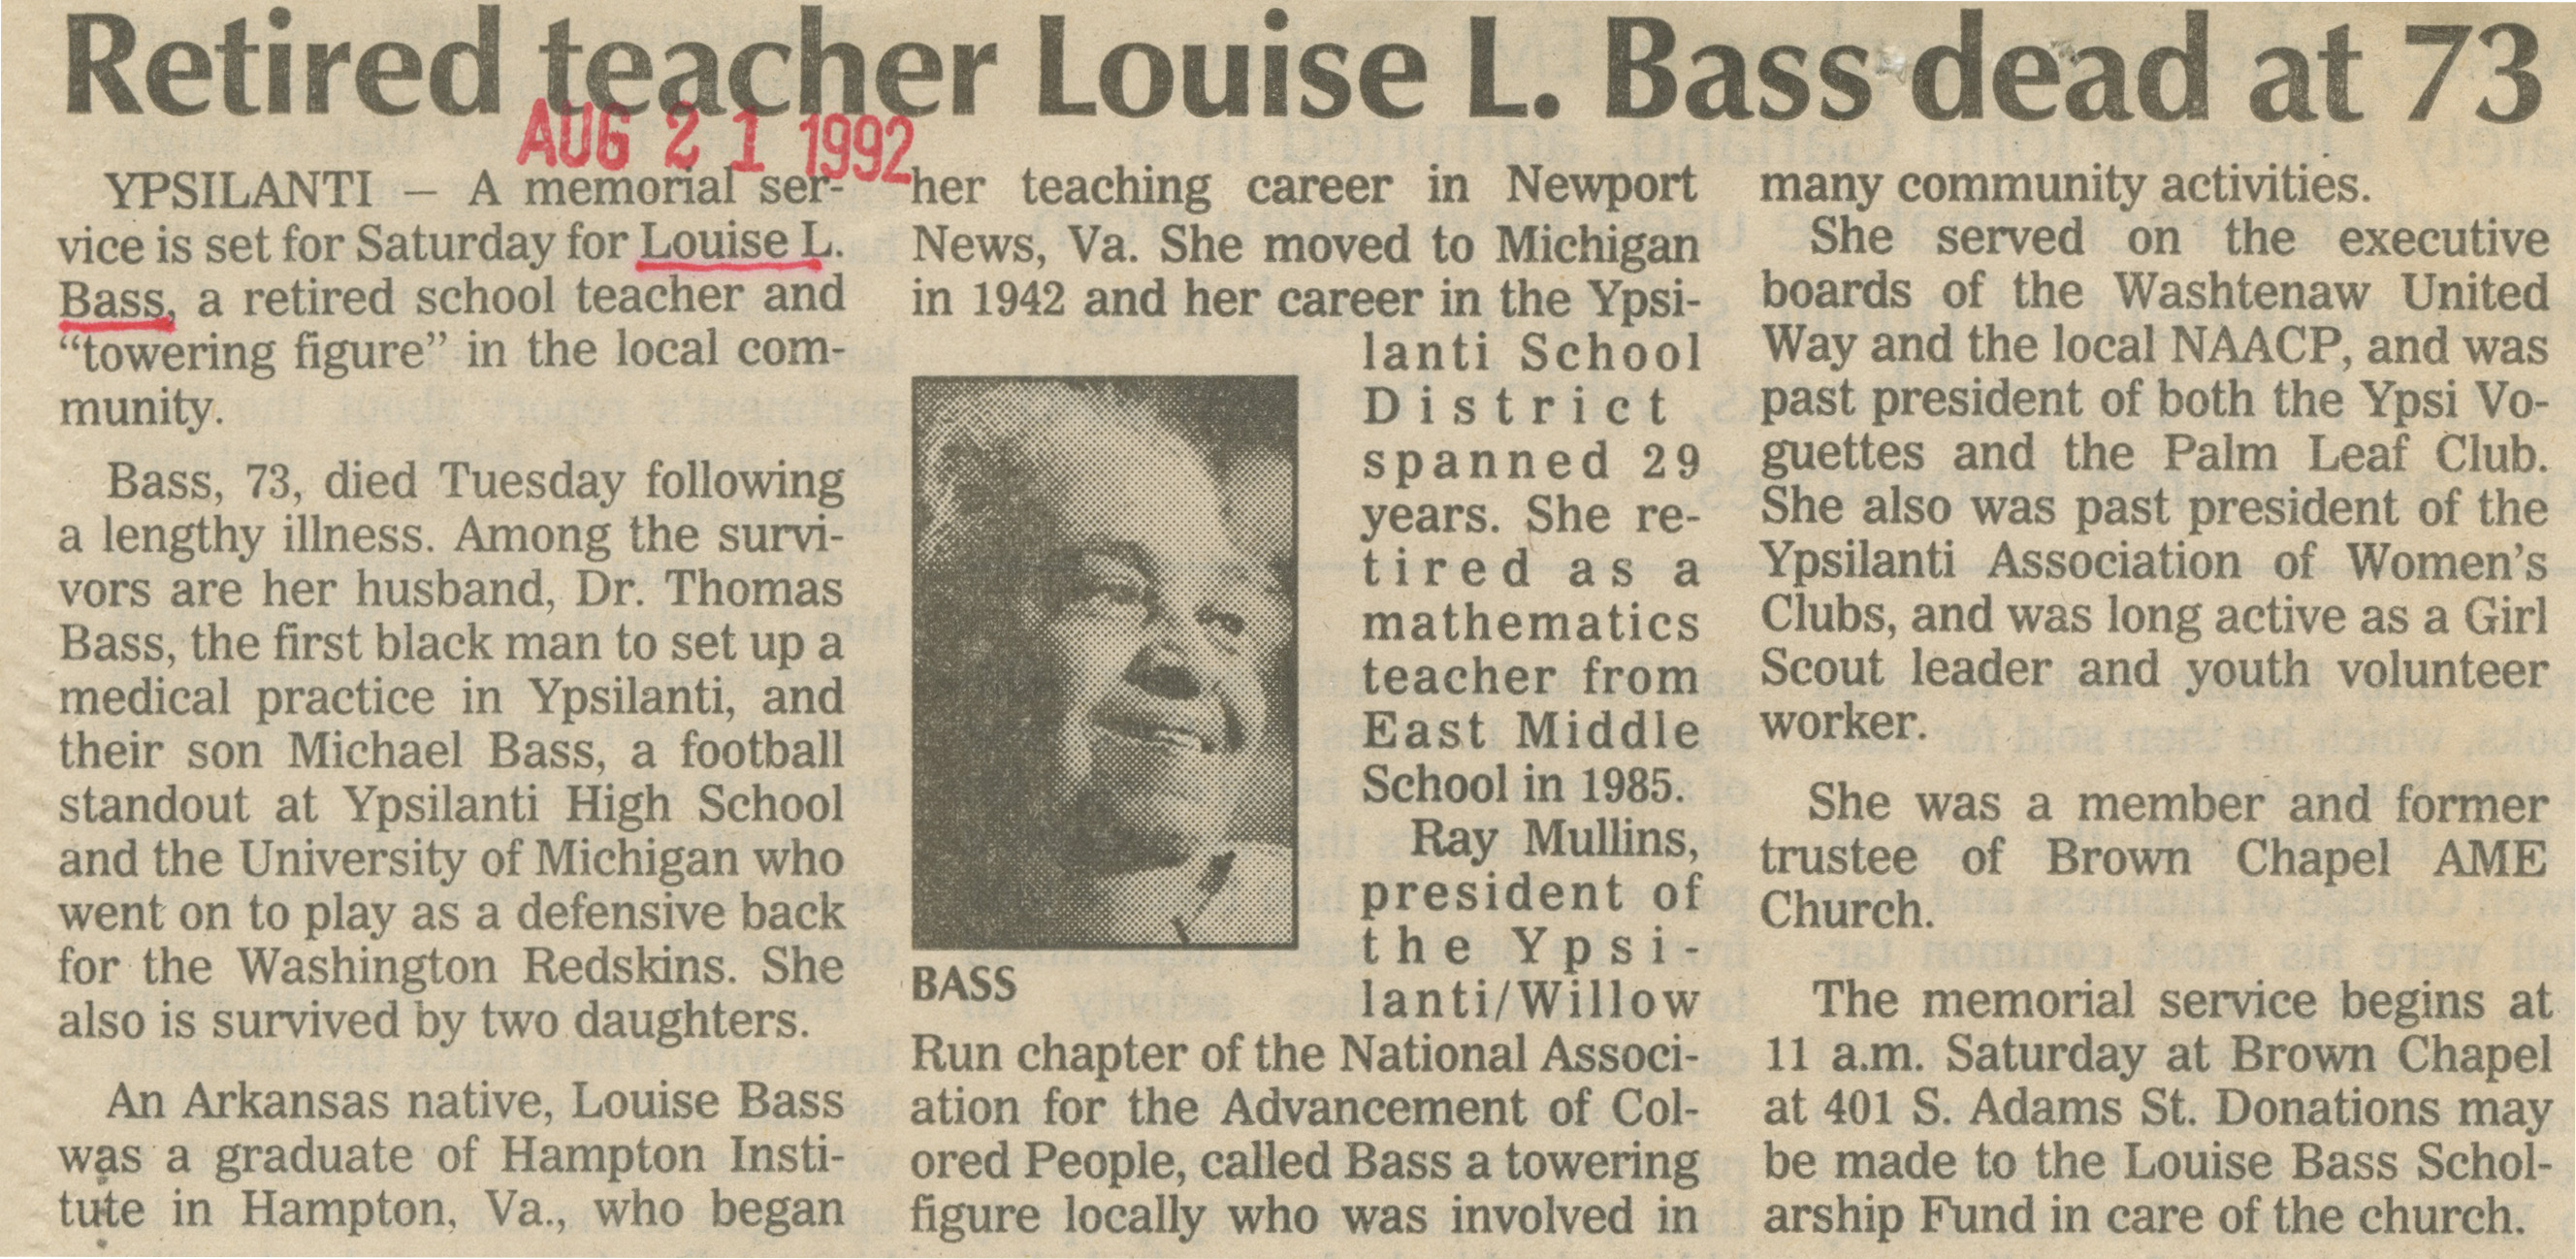 Retired teacher Louise L. Bass dead at 73 image